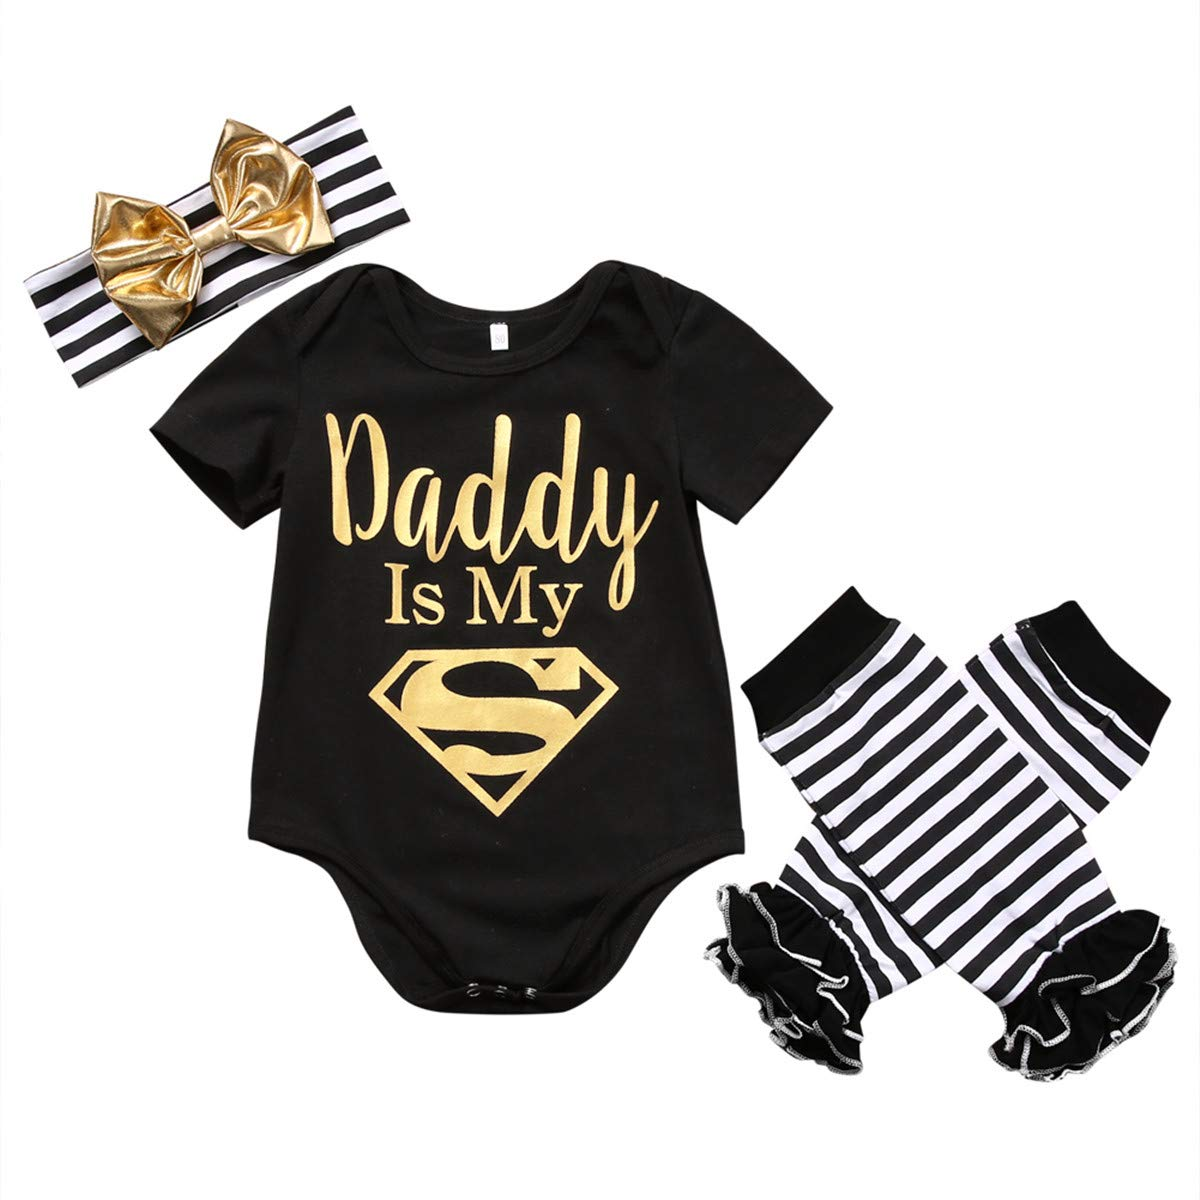 Dad is My Personal Newborn Infant Infant Girls Clothes Short Sleeve Romper Striped Legging Hotter Headwear 3PCS Outfit Clothes Full Moon Gift